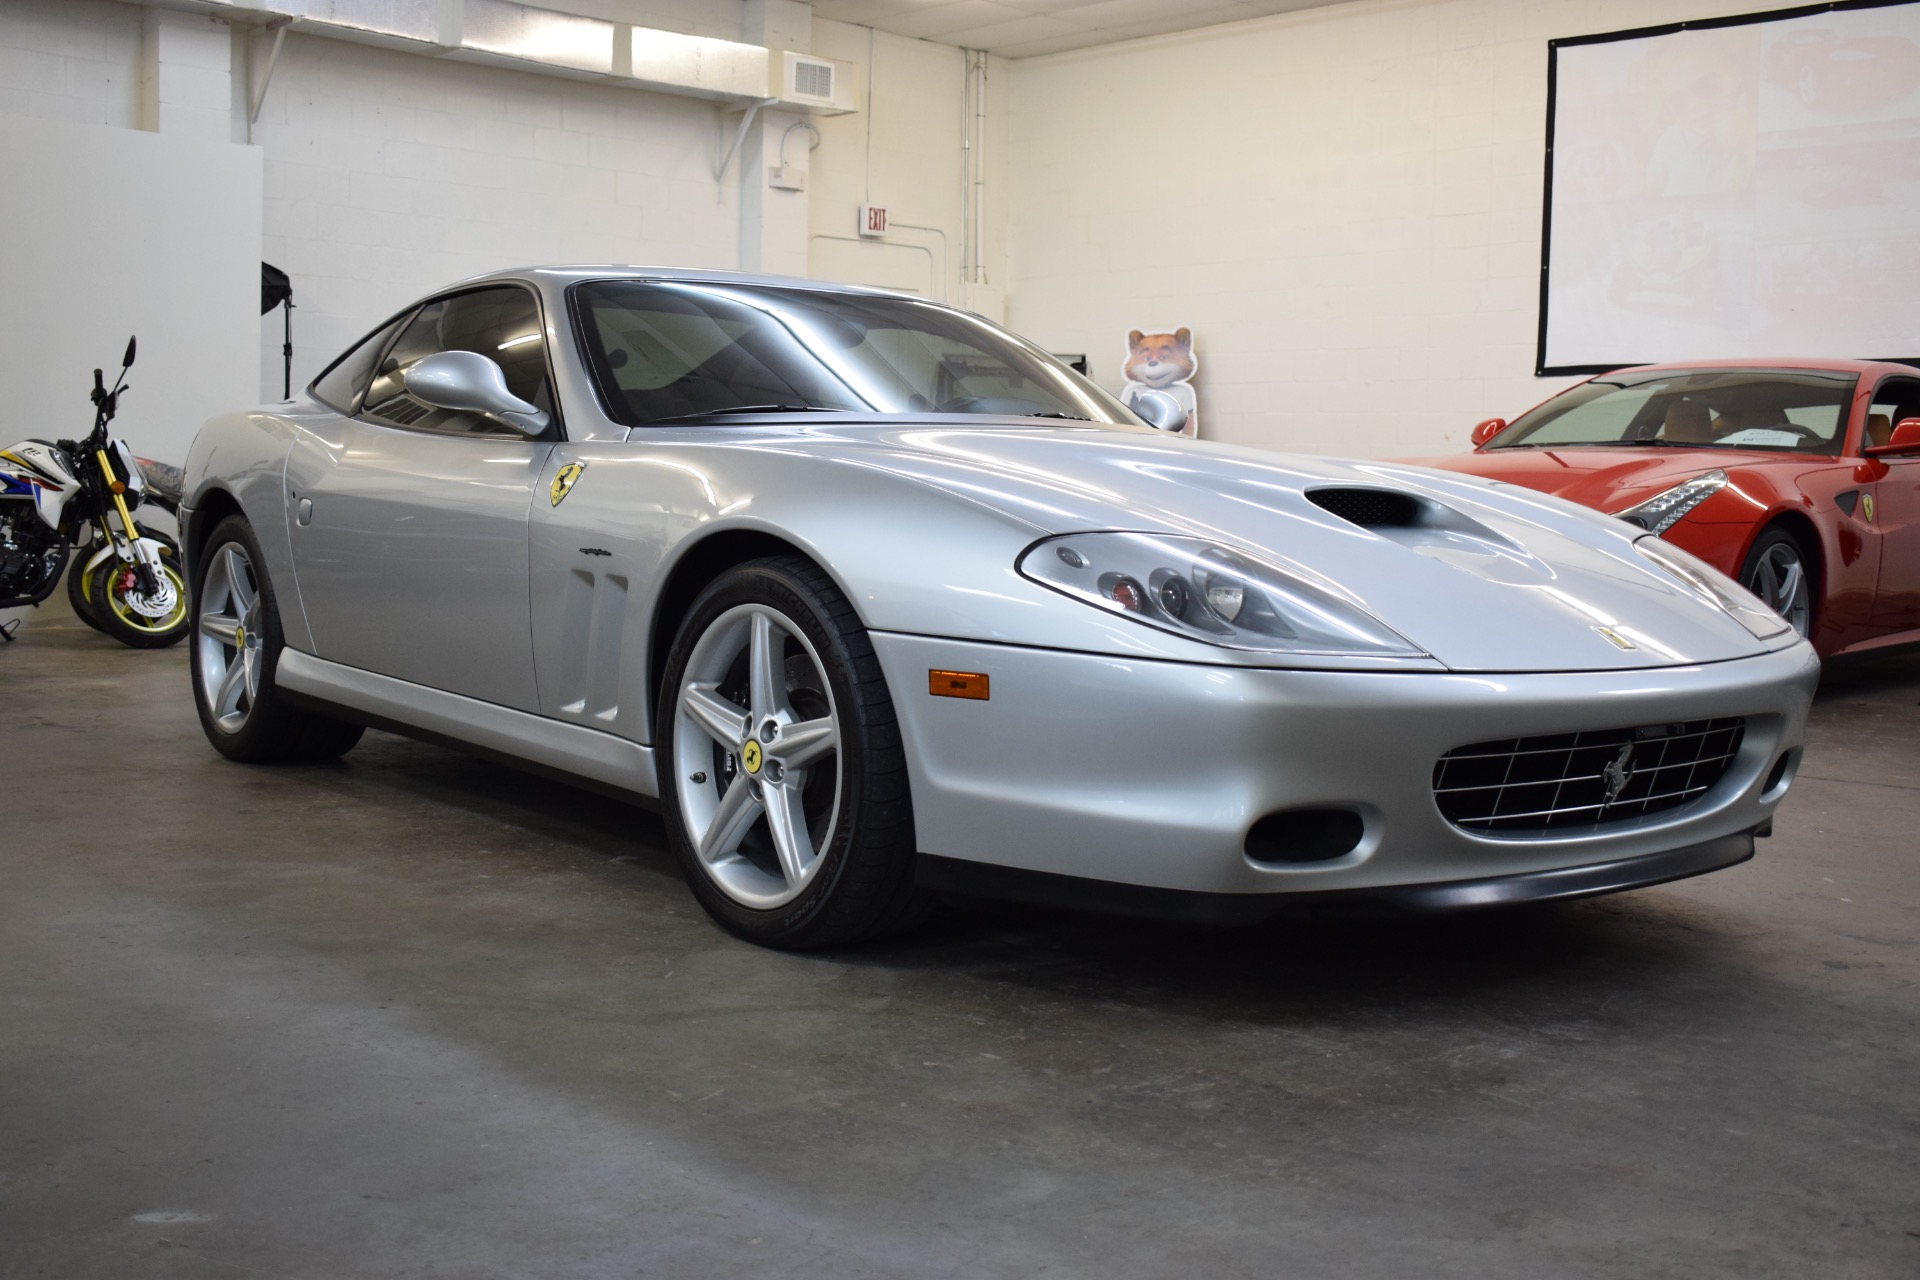 Used 2004 Ferrari 575M F1 for sale $104,997 at Track and Field Motors in Safety Harbor FL